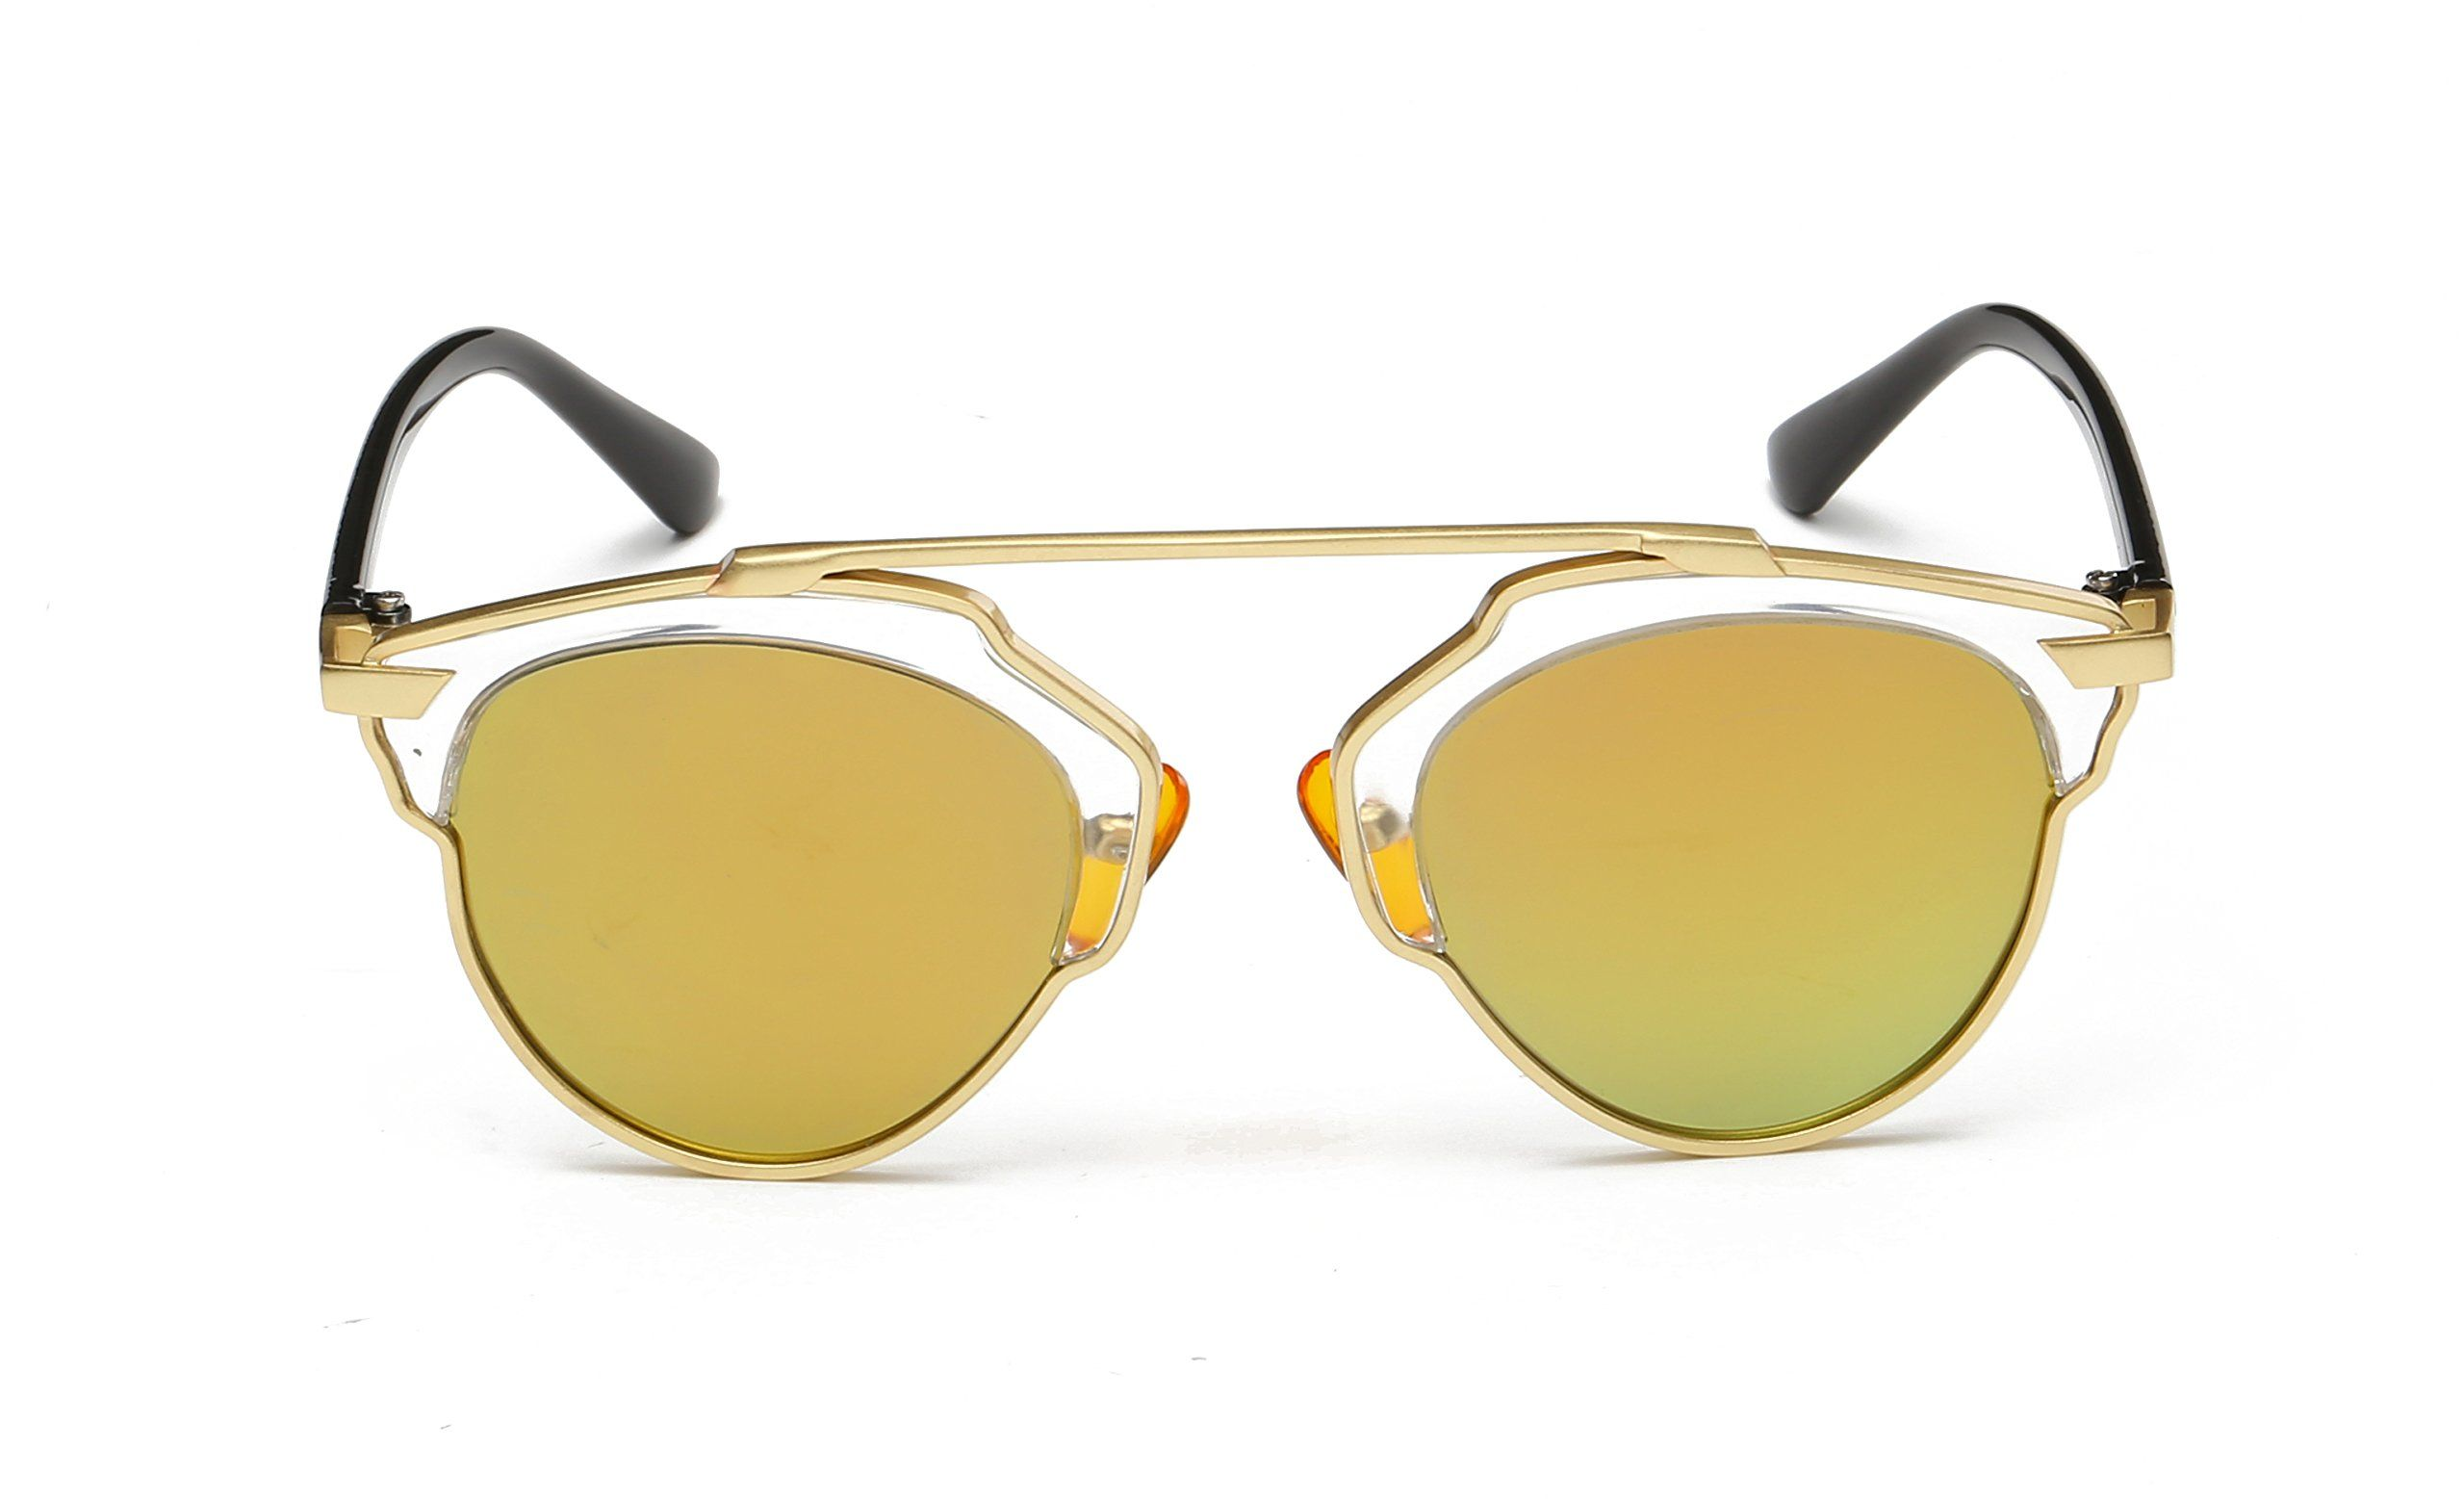 8c86abca931 GANT New Fashion Cateye Polarized Sunglasses For Women Classic Style (Gold  Lucency Gold Lens)